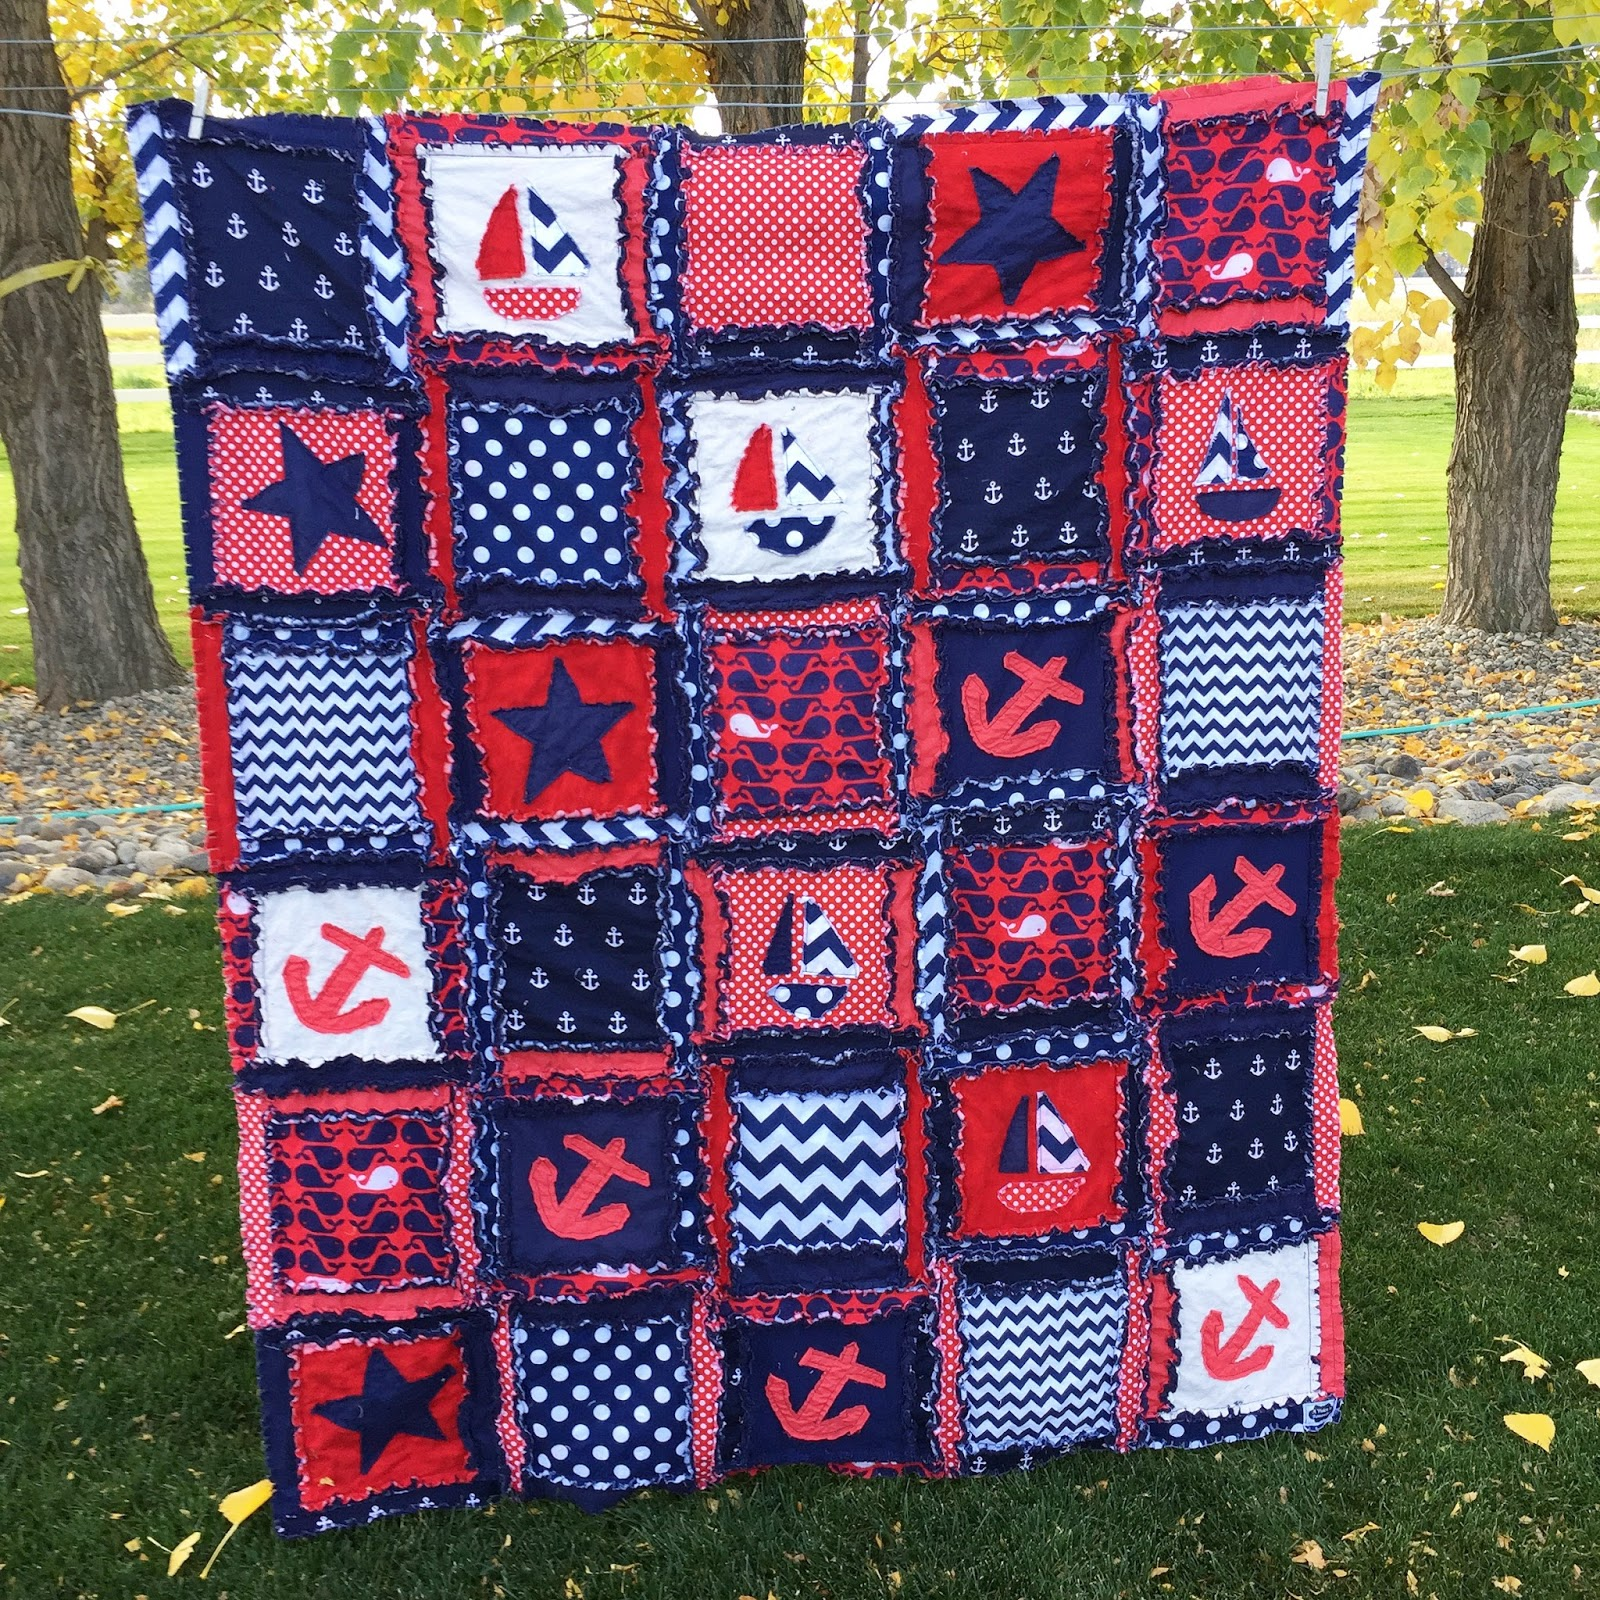 What Fabric Do I Use for Rag Quilts? from the Pro Rag Quilt Maker ... : use of quilt - Adamdwight.com